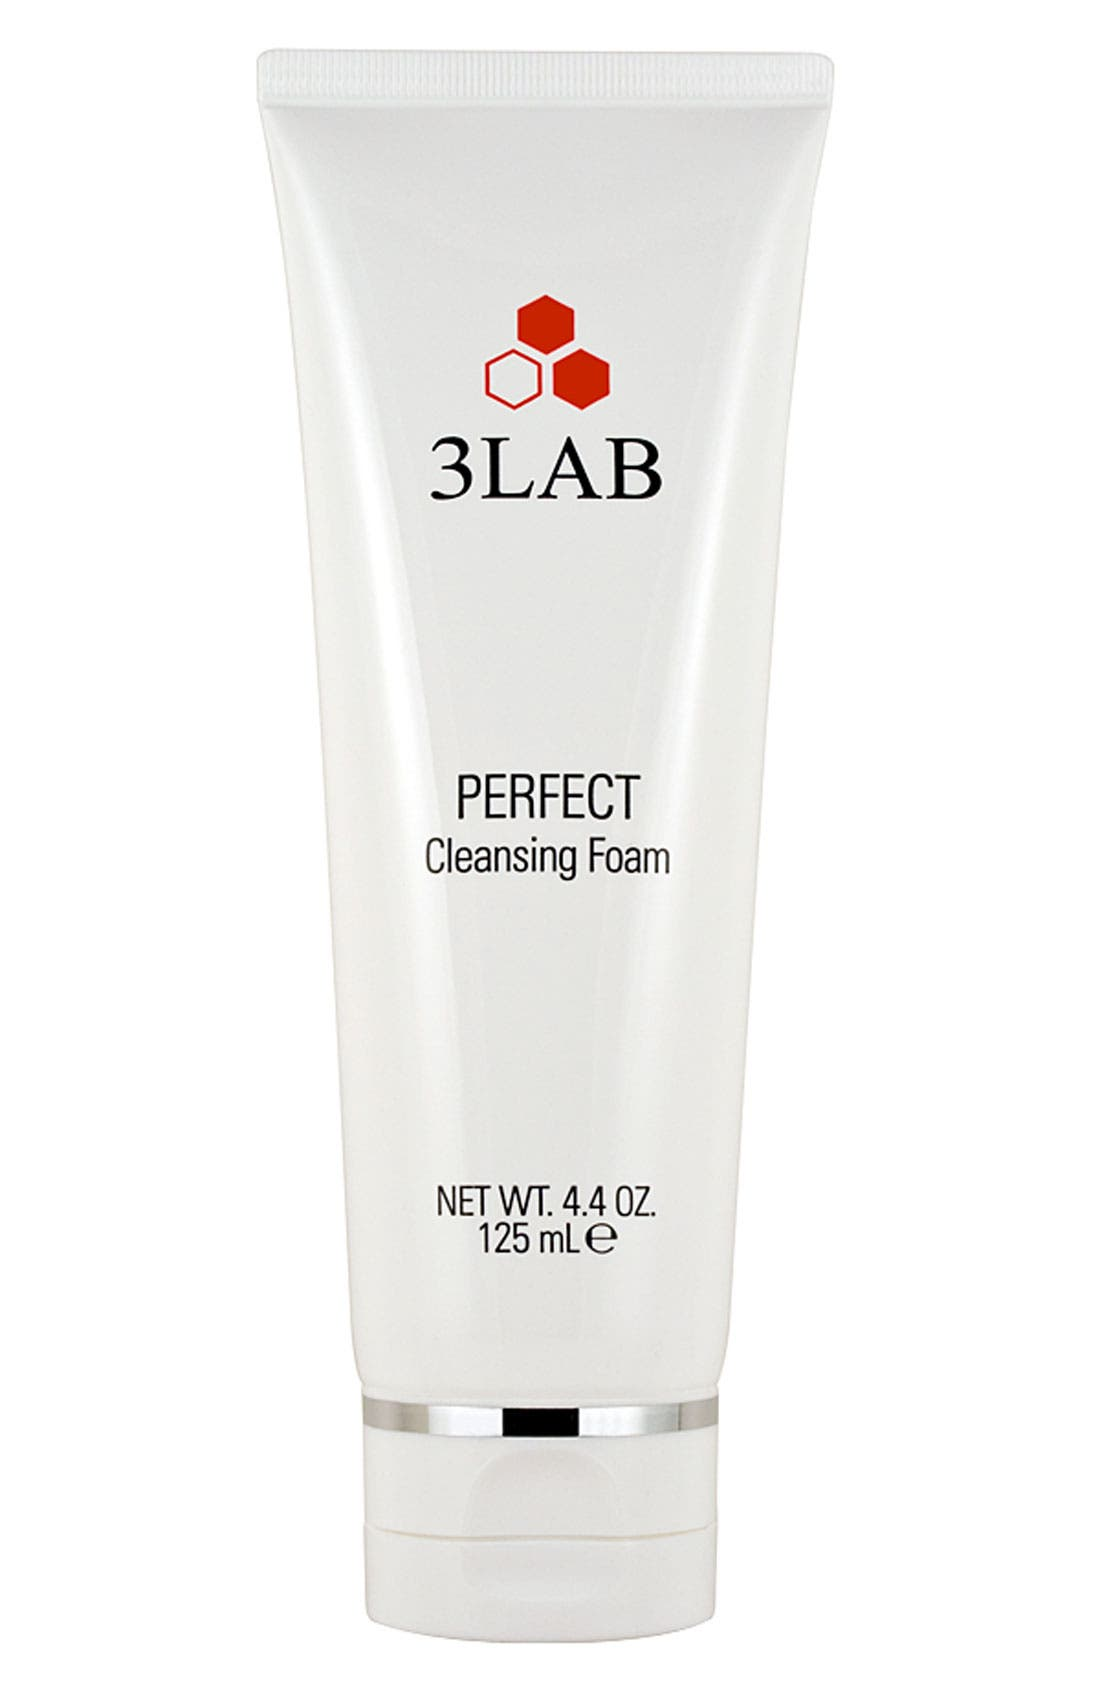 3LAB Perfect Cleansing Foam